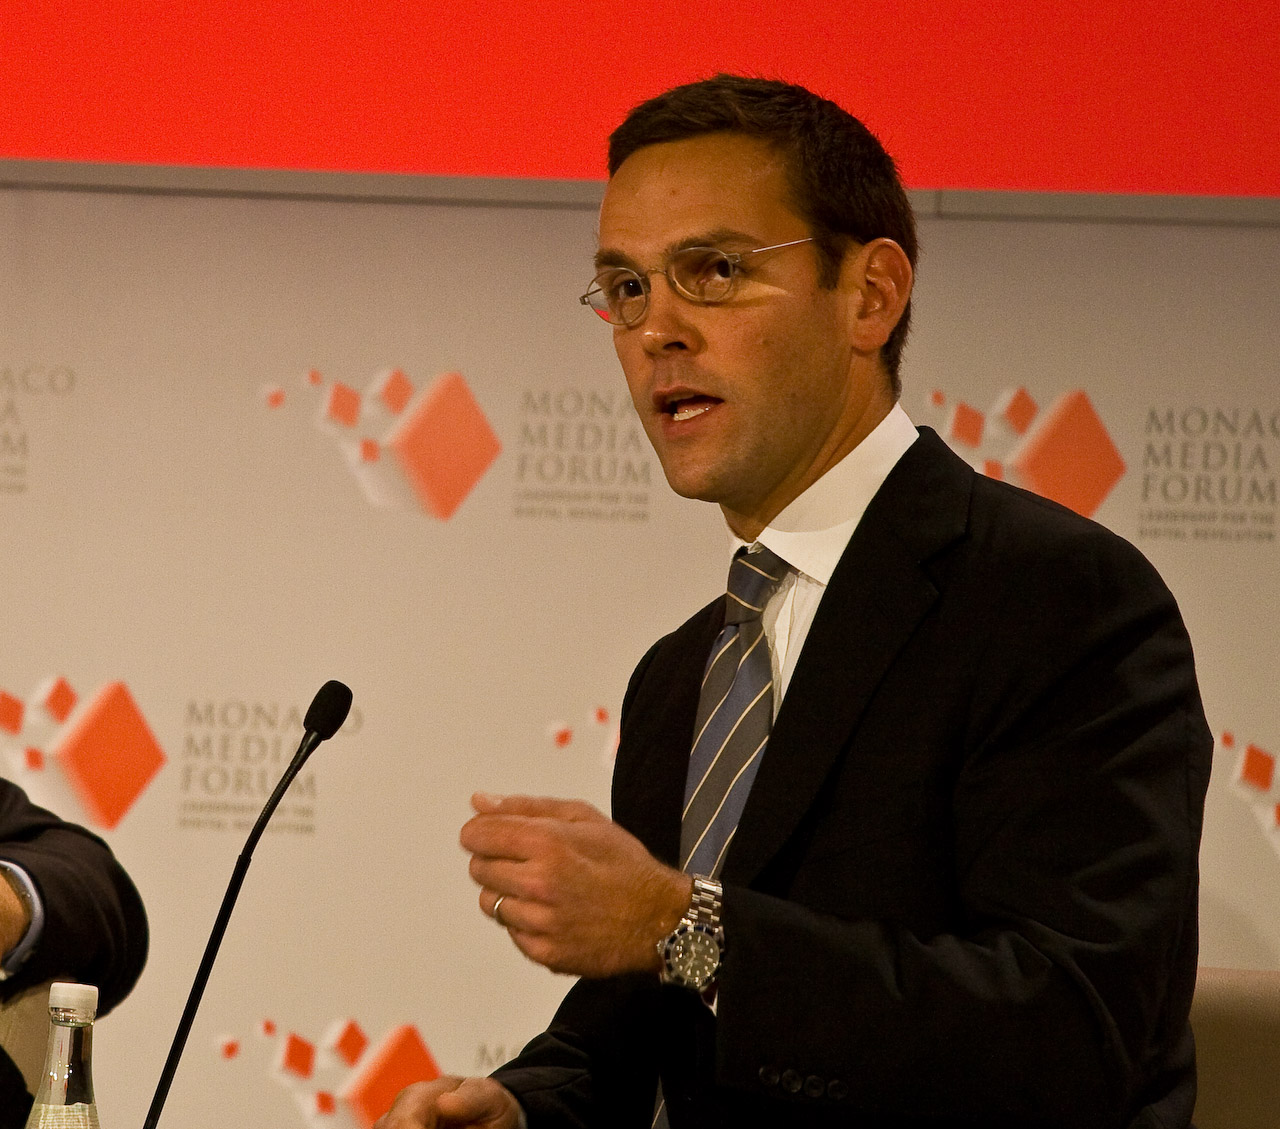 James_Murdoch_2008-_NRKbeta.jpg